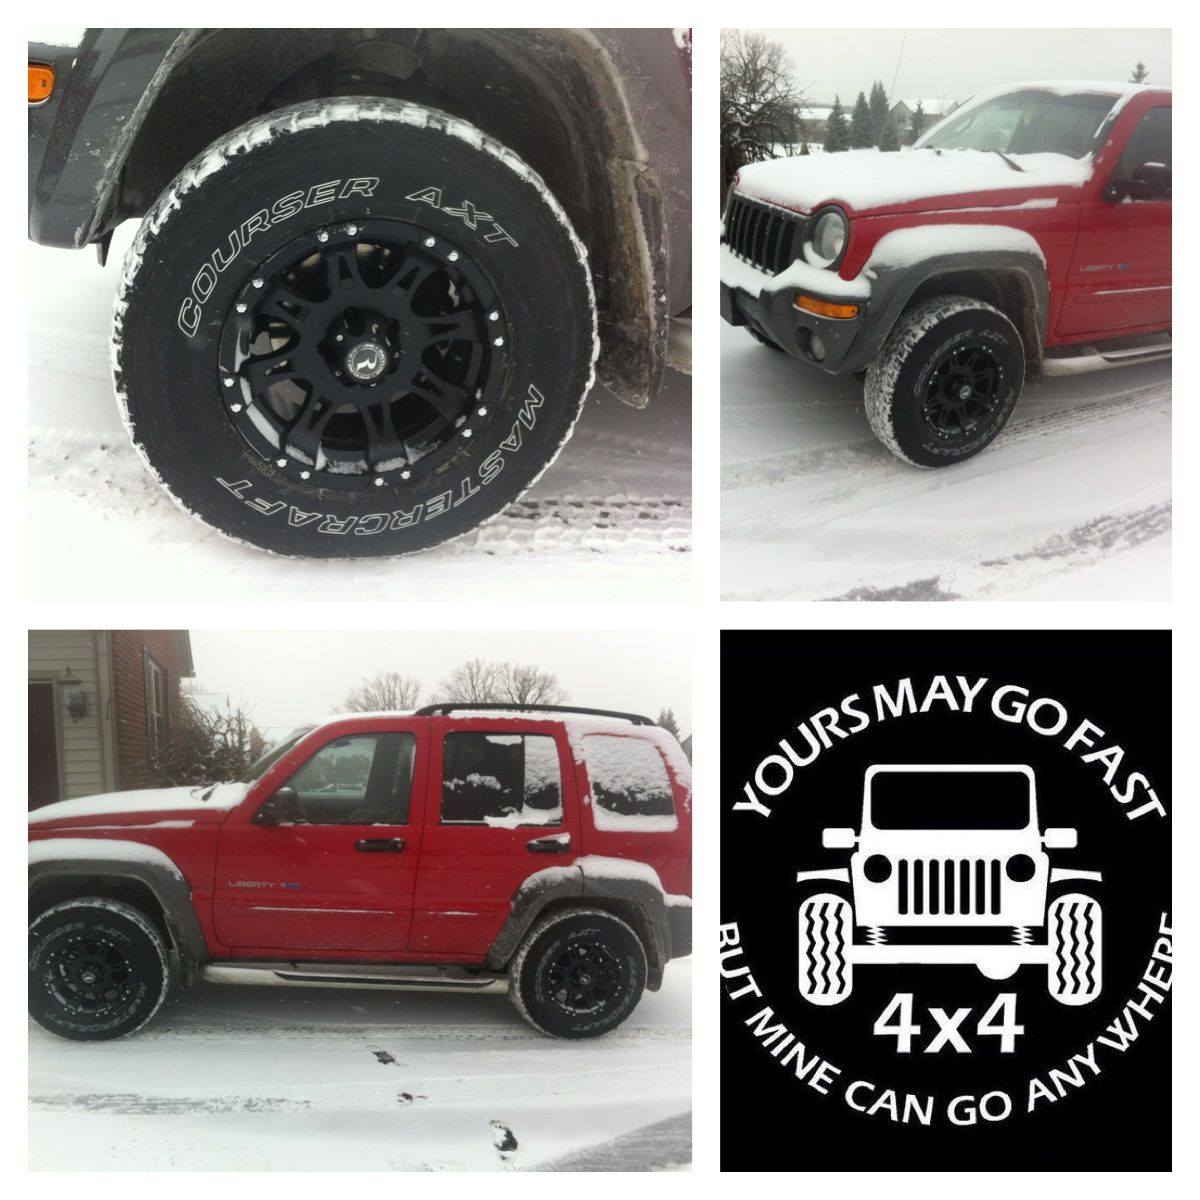 02 Jeep Liberty Lifted 3 Inches With 31 Tires And 16 Rims Jeep